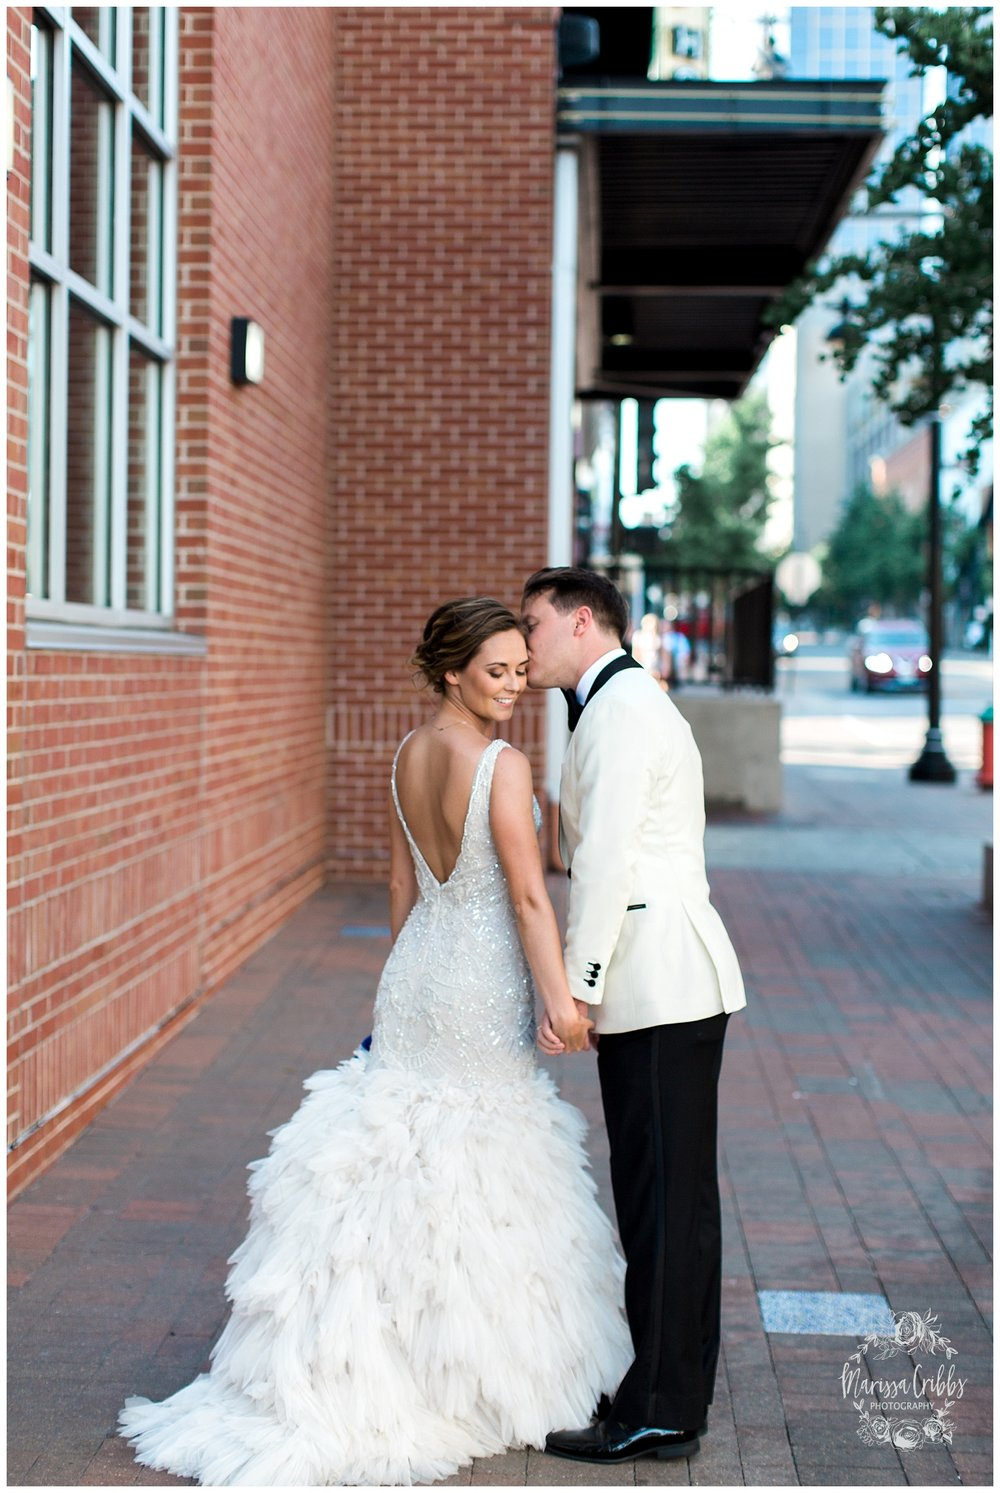 Haley & Steven Reception | The Gallery Event Space | Marissa Cribbs Photography | KC Wedding Photographers_1584.jpg